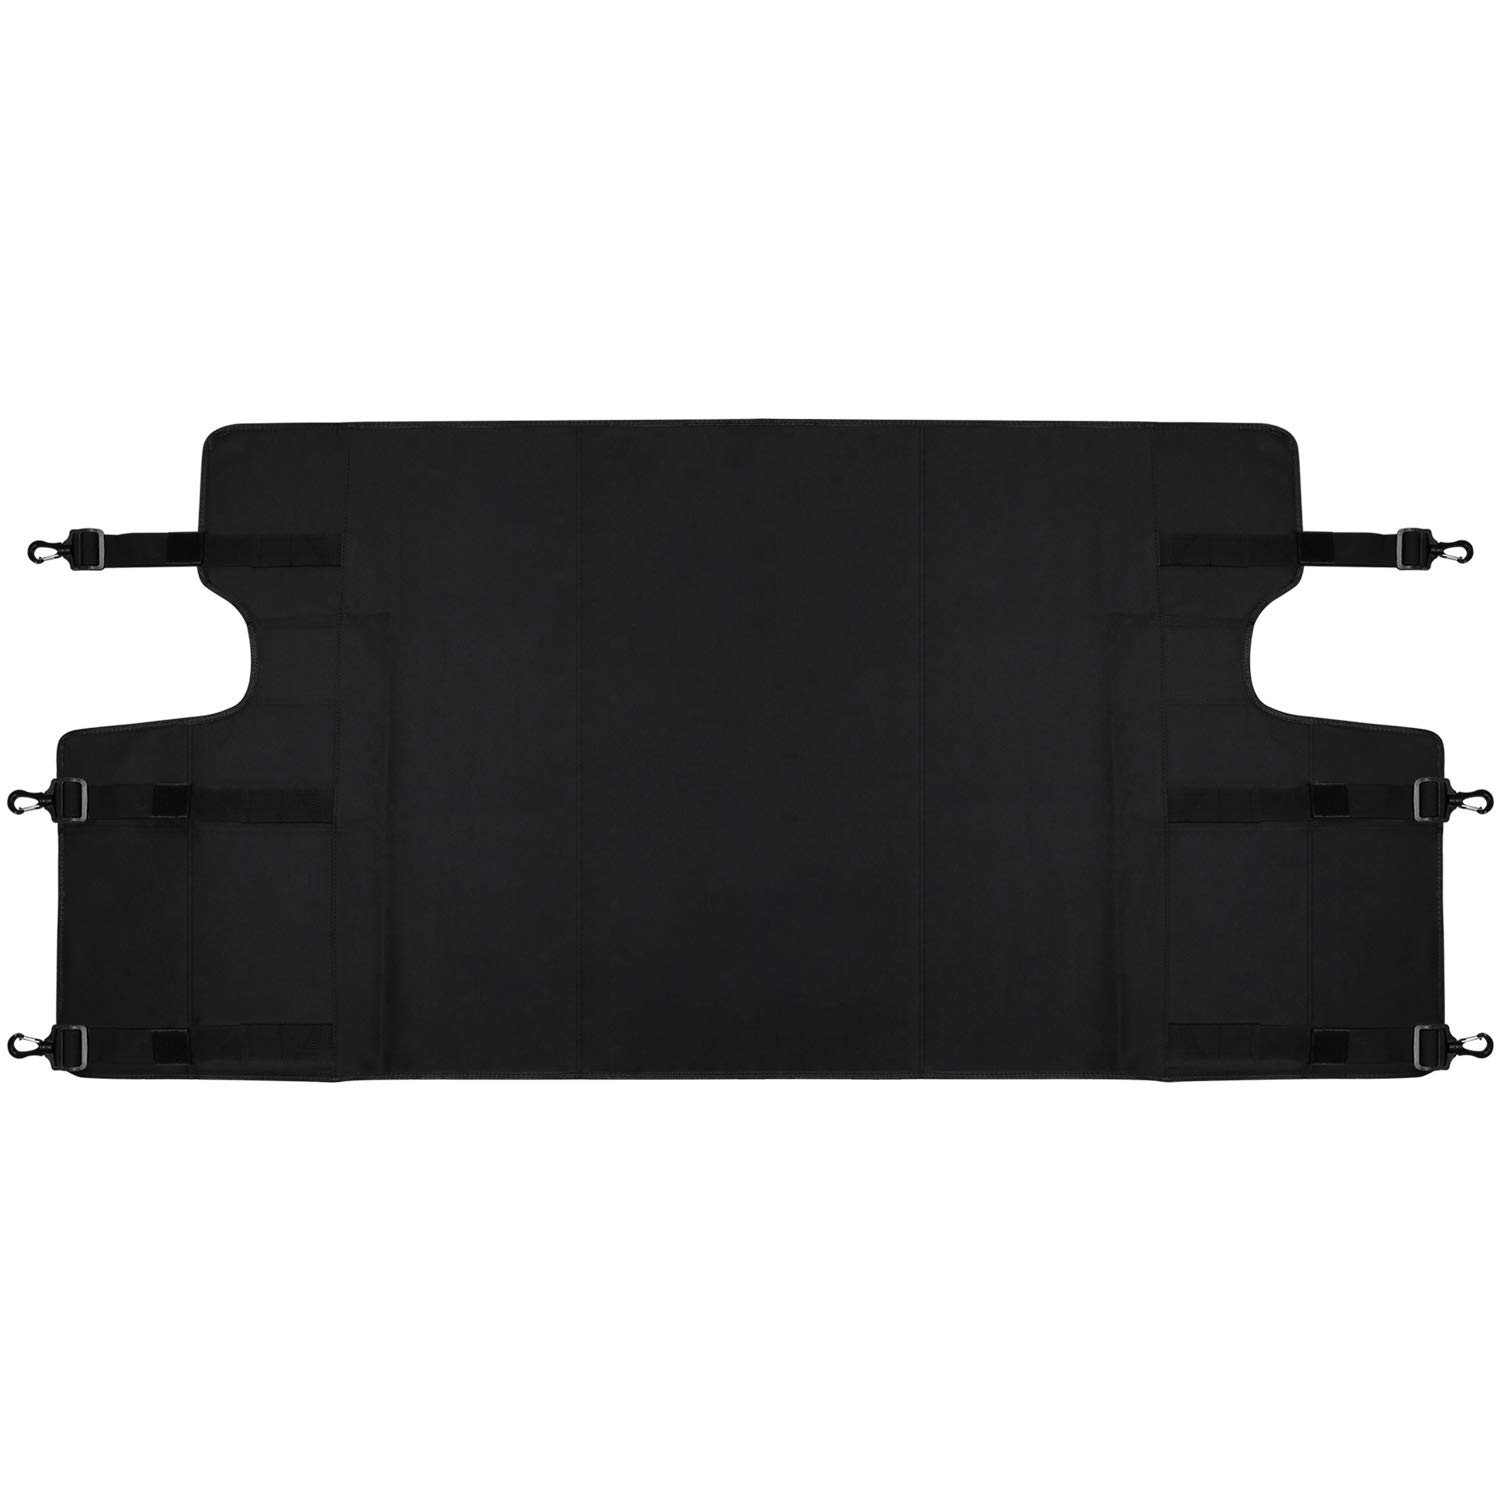 【Upgrade Version】 Opall Retractable Rear Trunk Cargo Luggage Security Shade Cover Shield for Jeep Cherokee 2014 2015 2016 2017 2018 BLACK